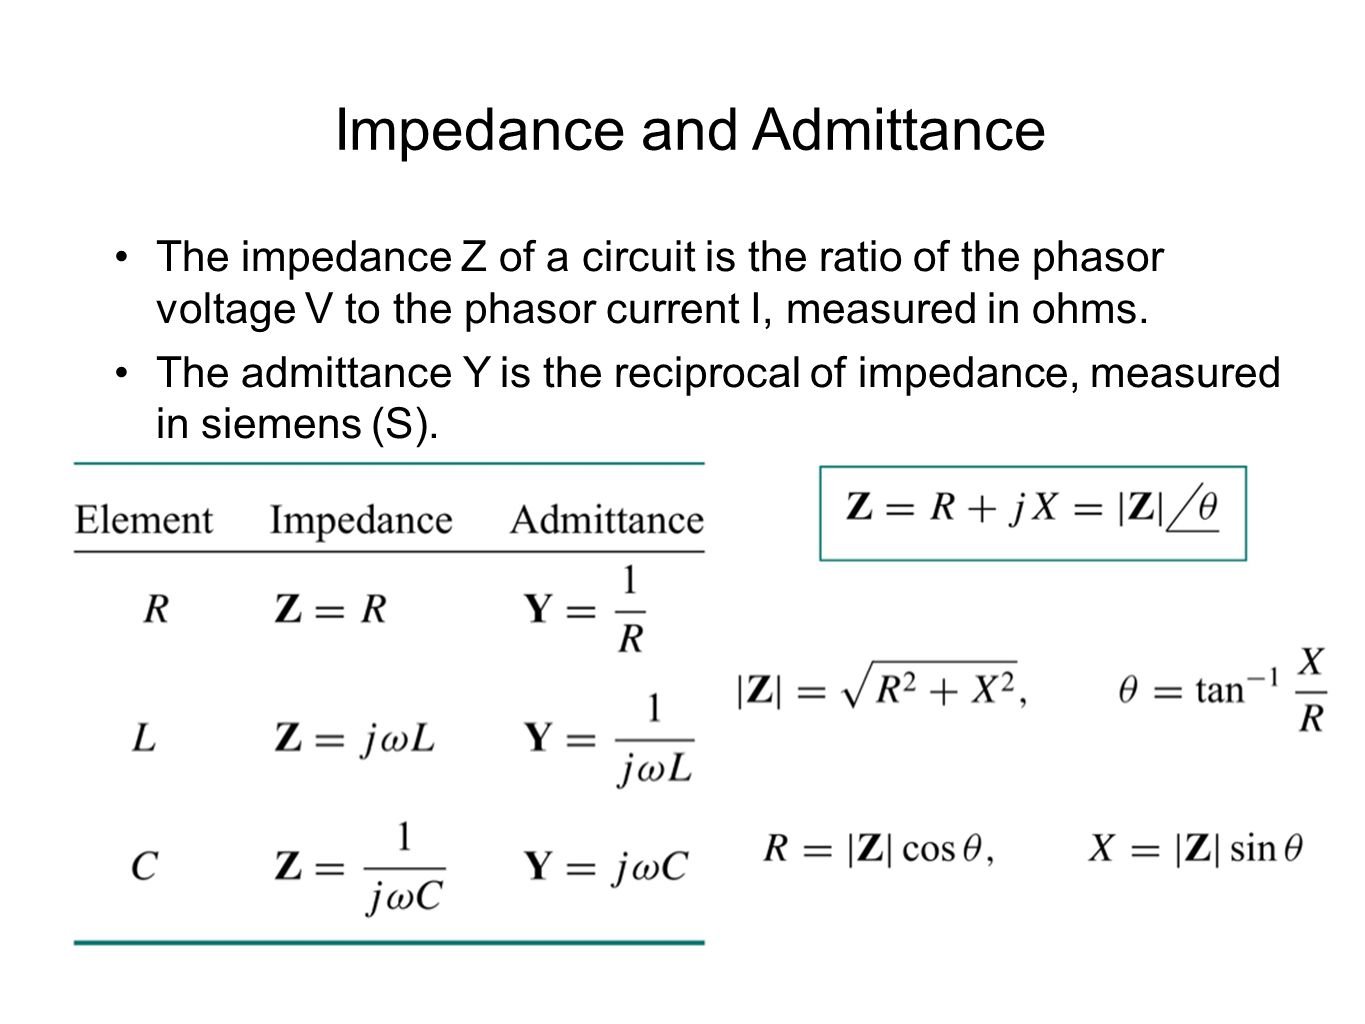 Impedance and Admittance The impedance Z of a circuit is the ratio of the phasor voltage V to the phasor current I, measured in ohms.